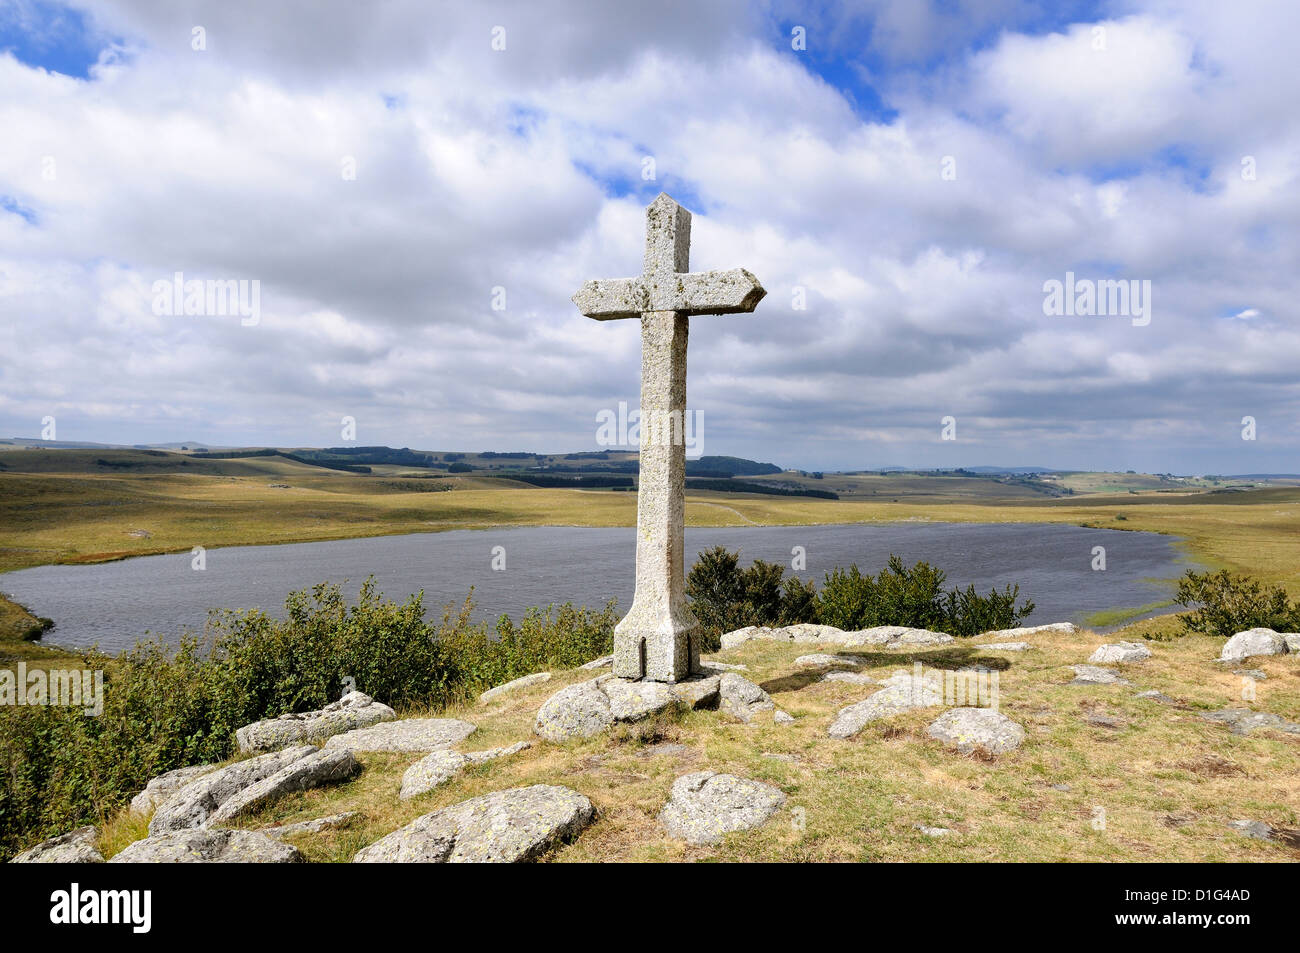 Cross at St Andeol lake on the Way of St James in Lozere, Aubrac, France, Europe - pilgrimage route to Santiago - Stock Image